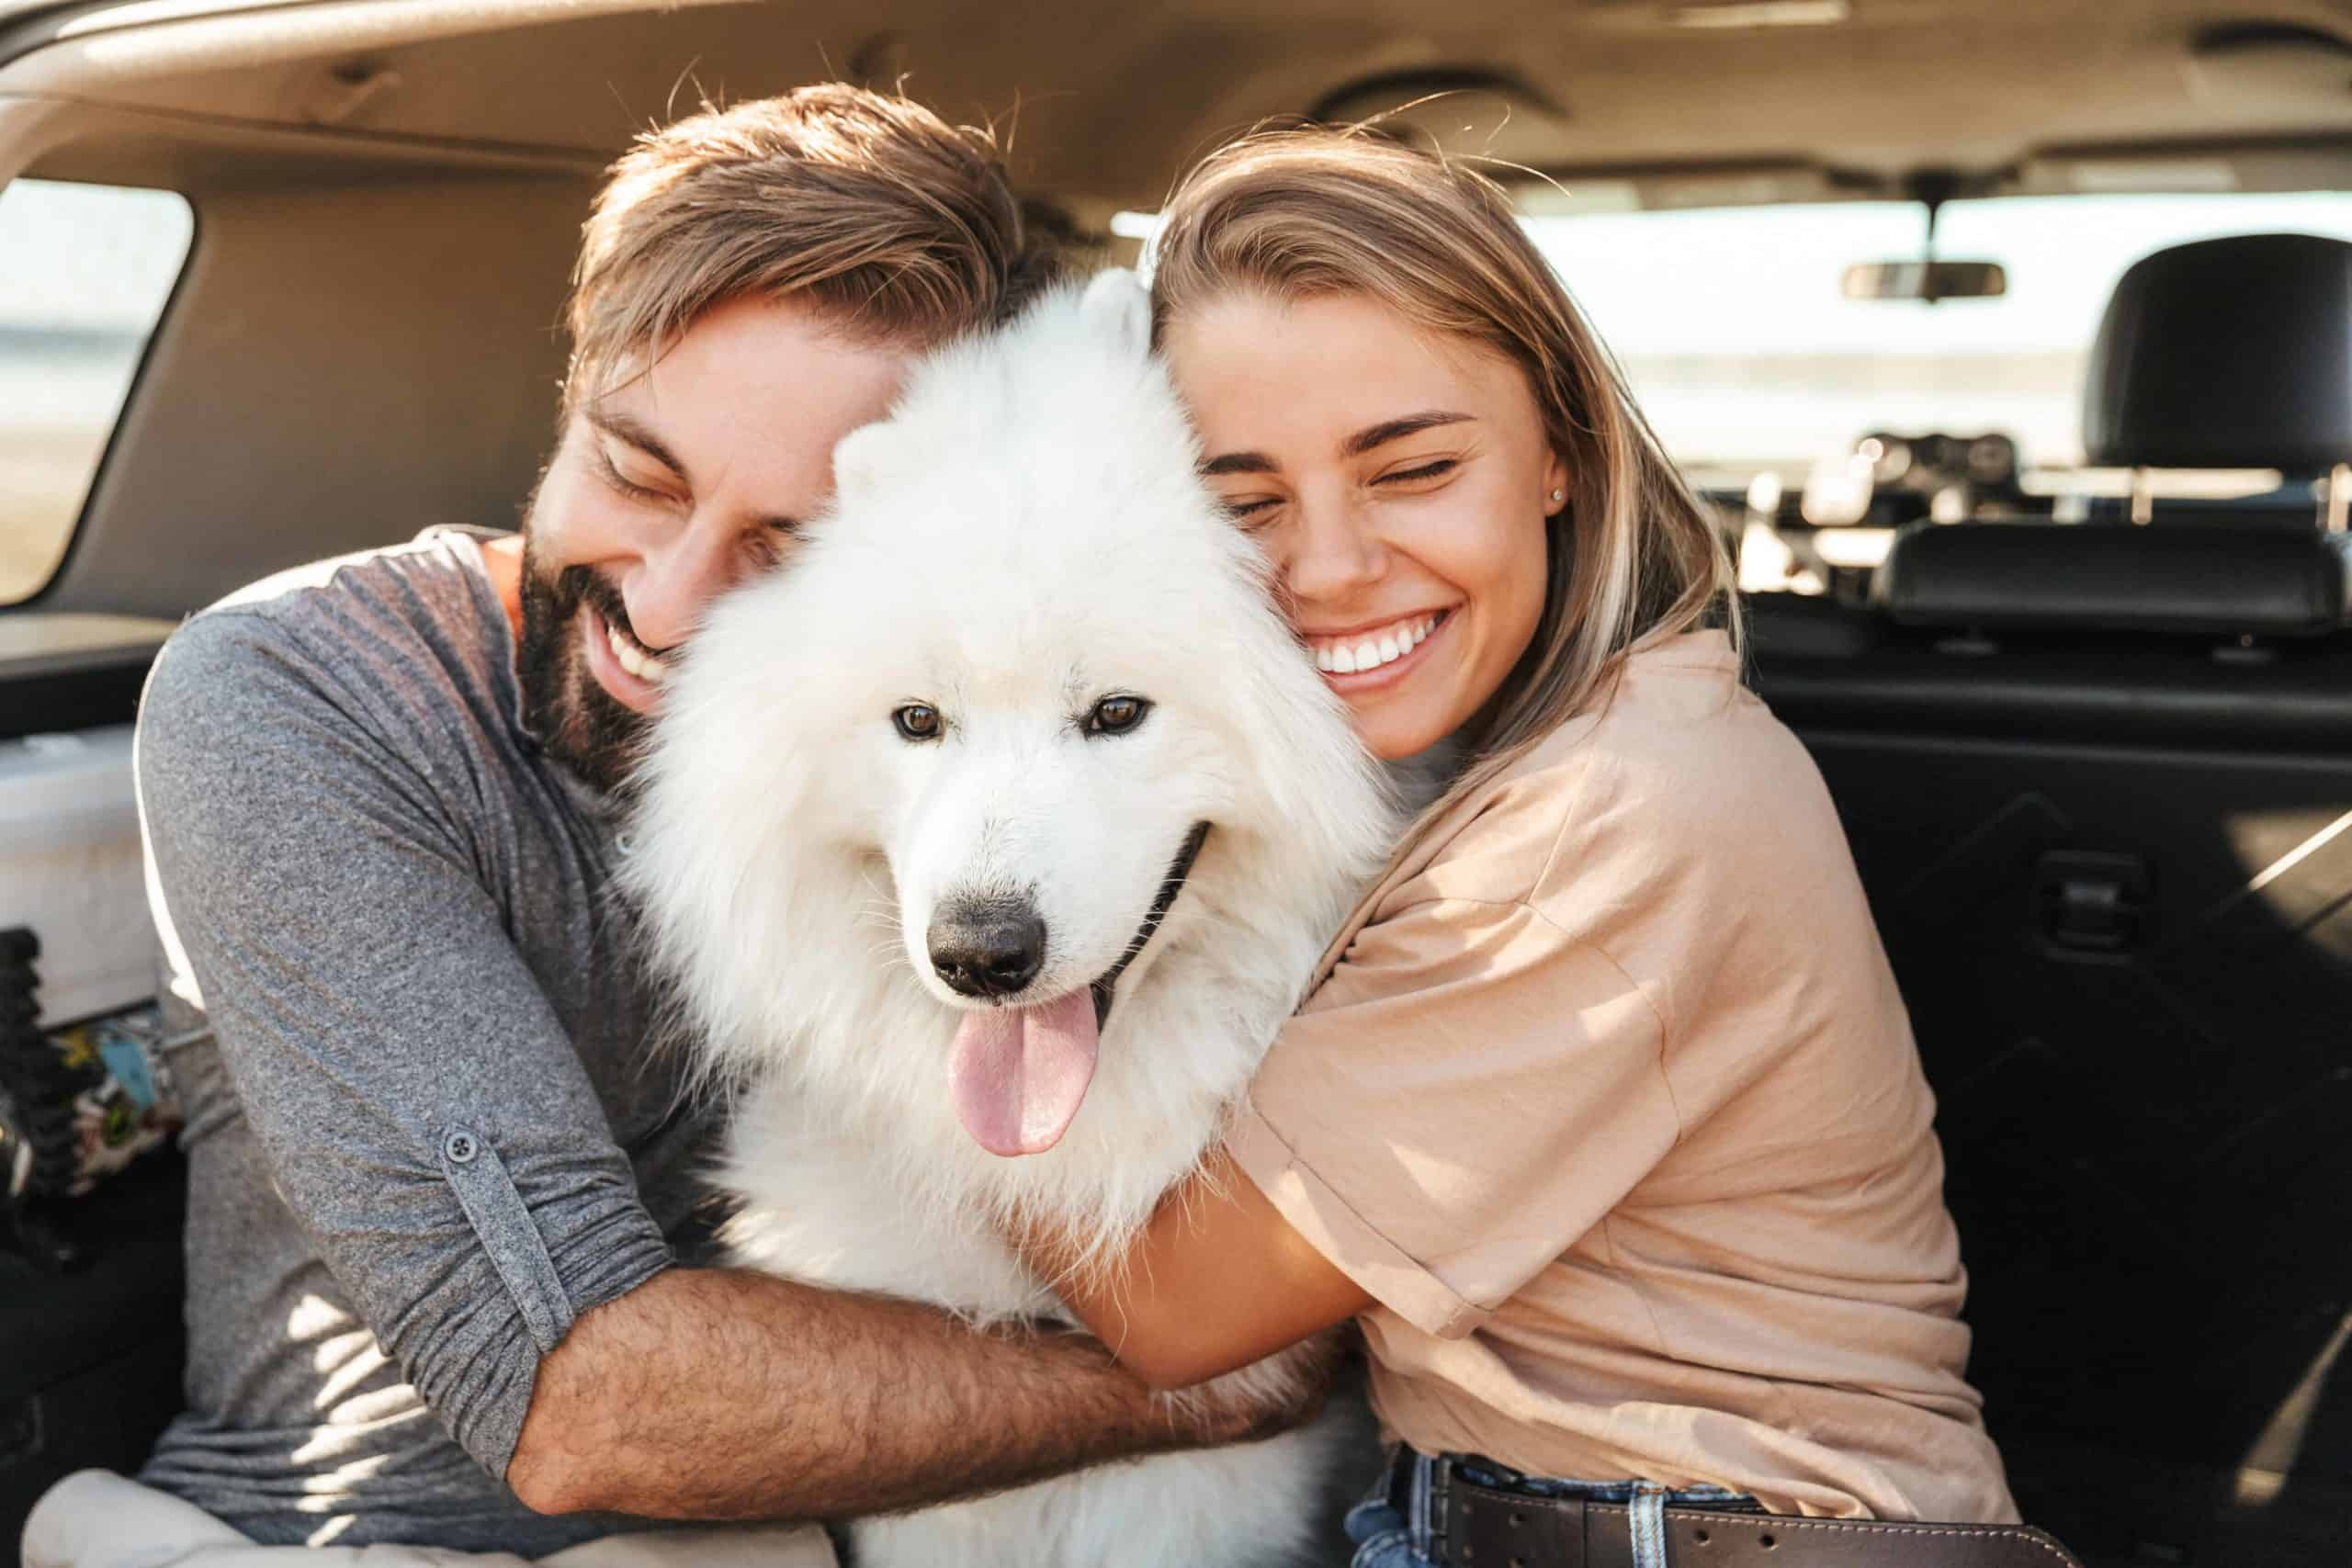 Happy couple hugs a Samoyed. Bring your dog on your date. Consider dog-friendly date options like hiking or going to the dog park.